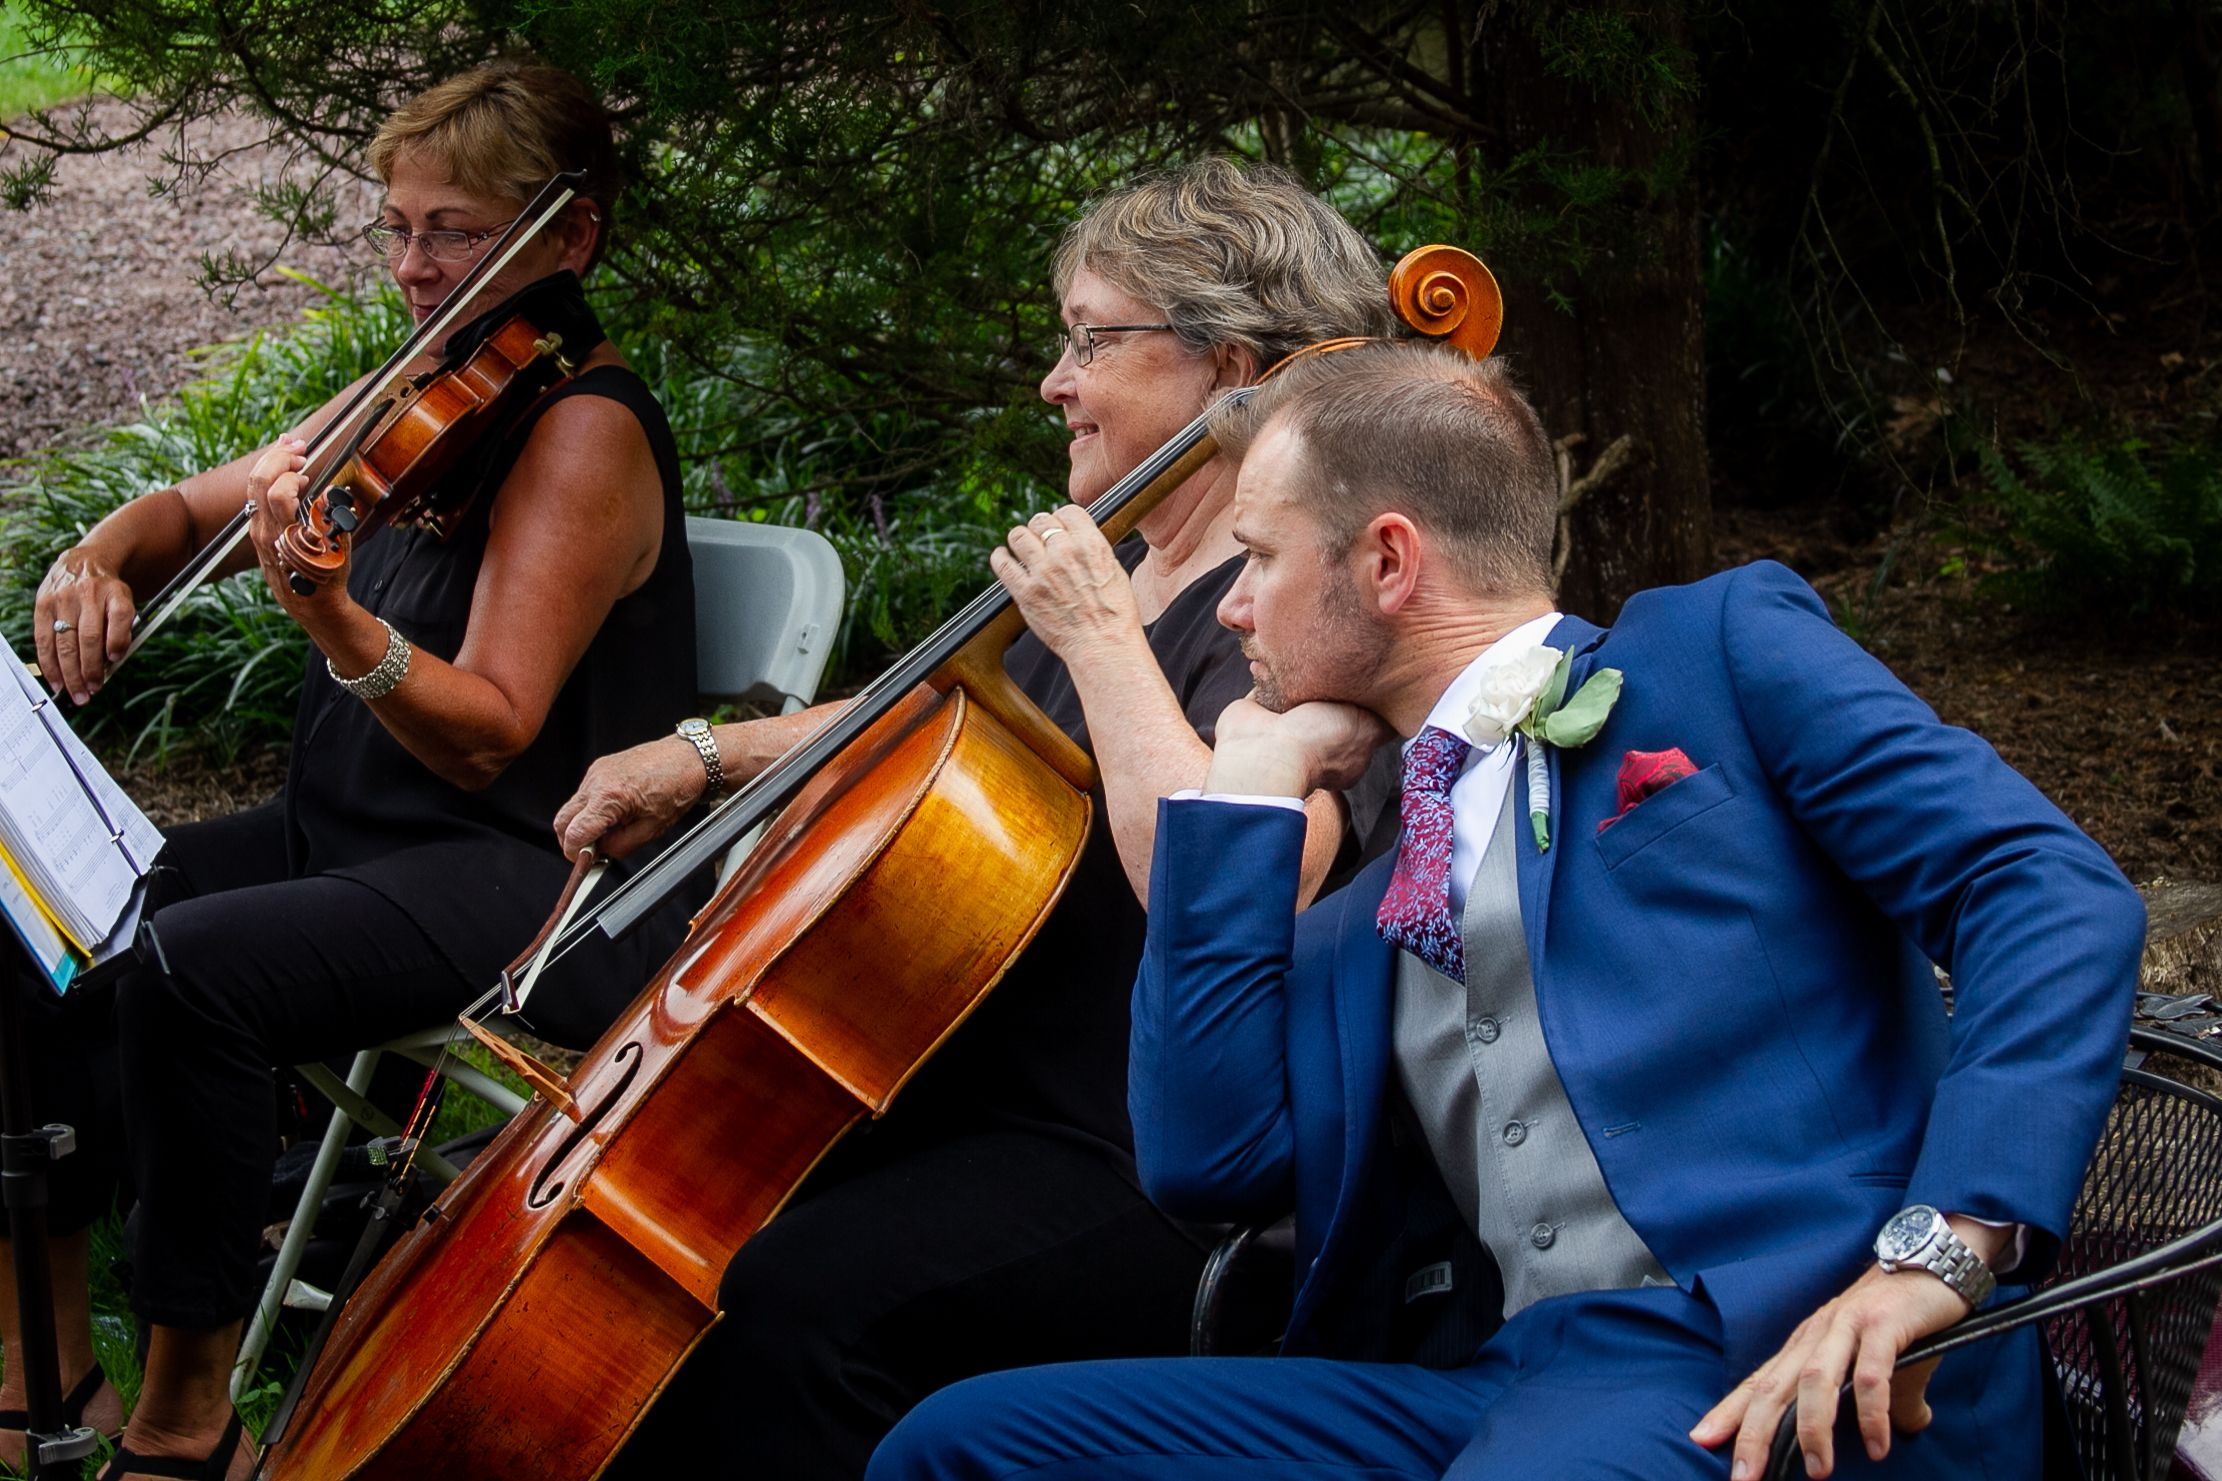 Pin on String quartet for a beautiful wedding ceremony